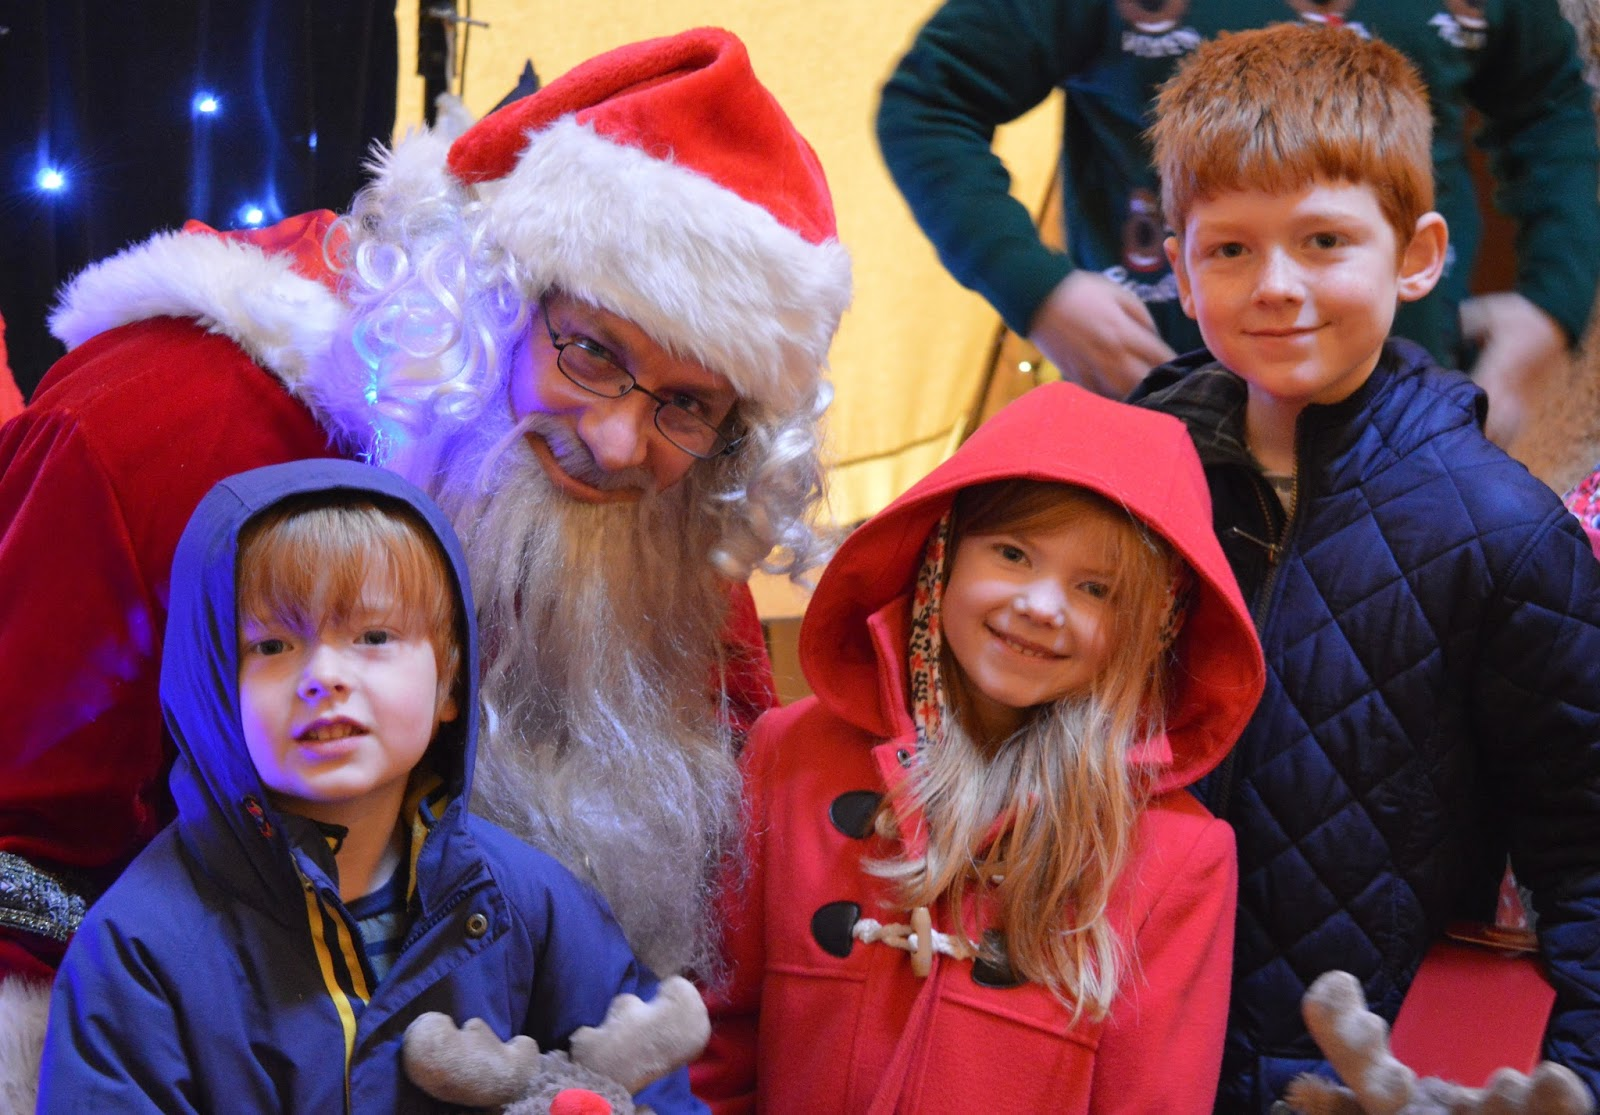 Enchanted Christmas.An Enchanted Christmas At Whitworth Hall Review North